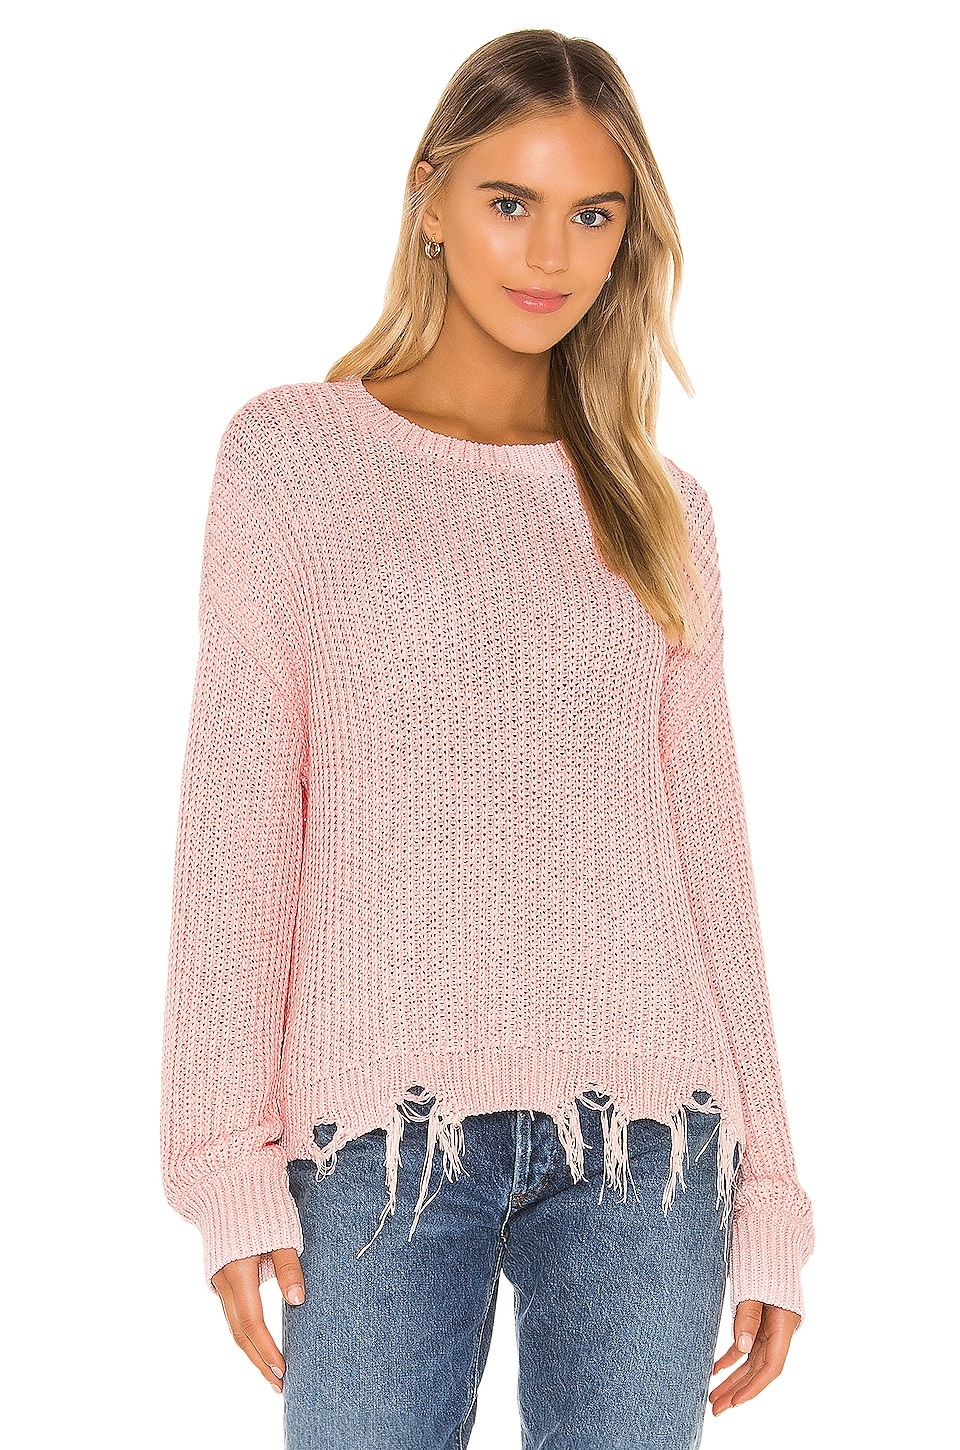 Lovers + Friends Lansel Sweater in Pink